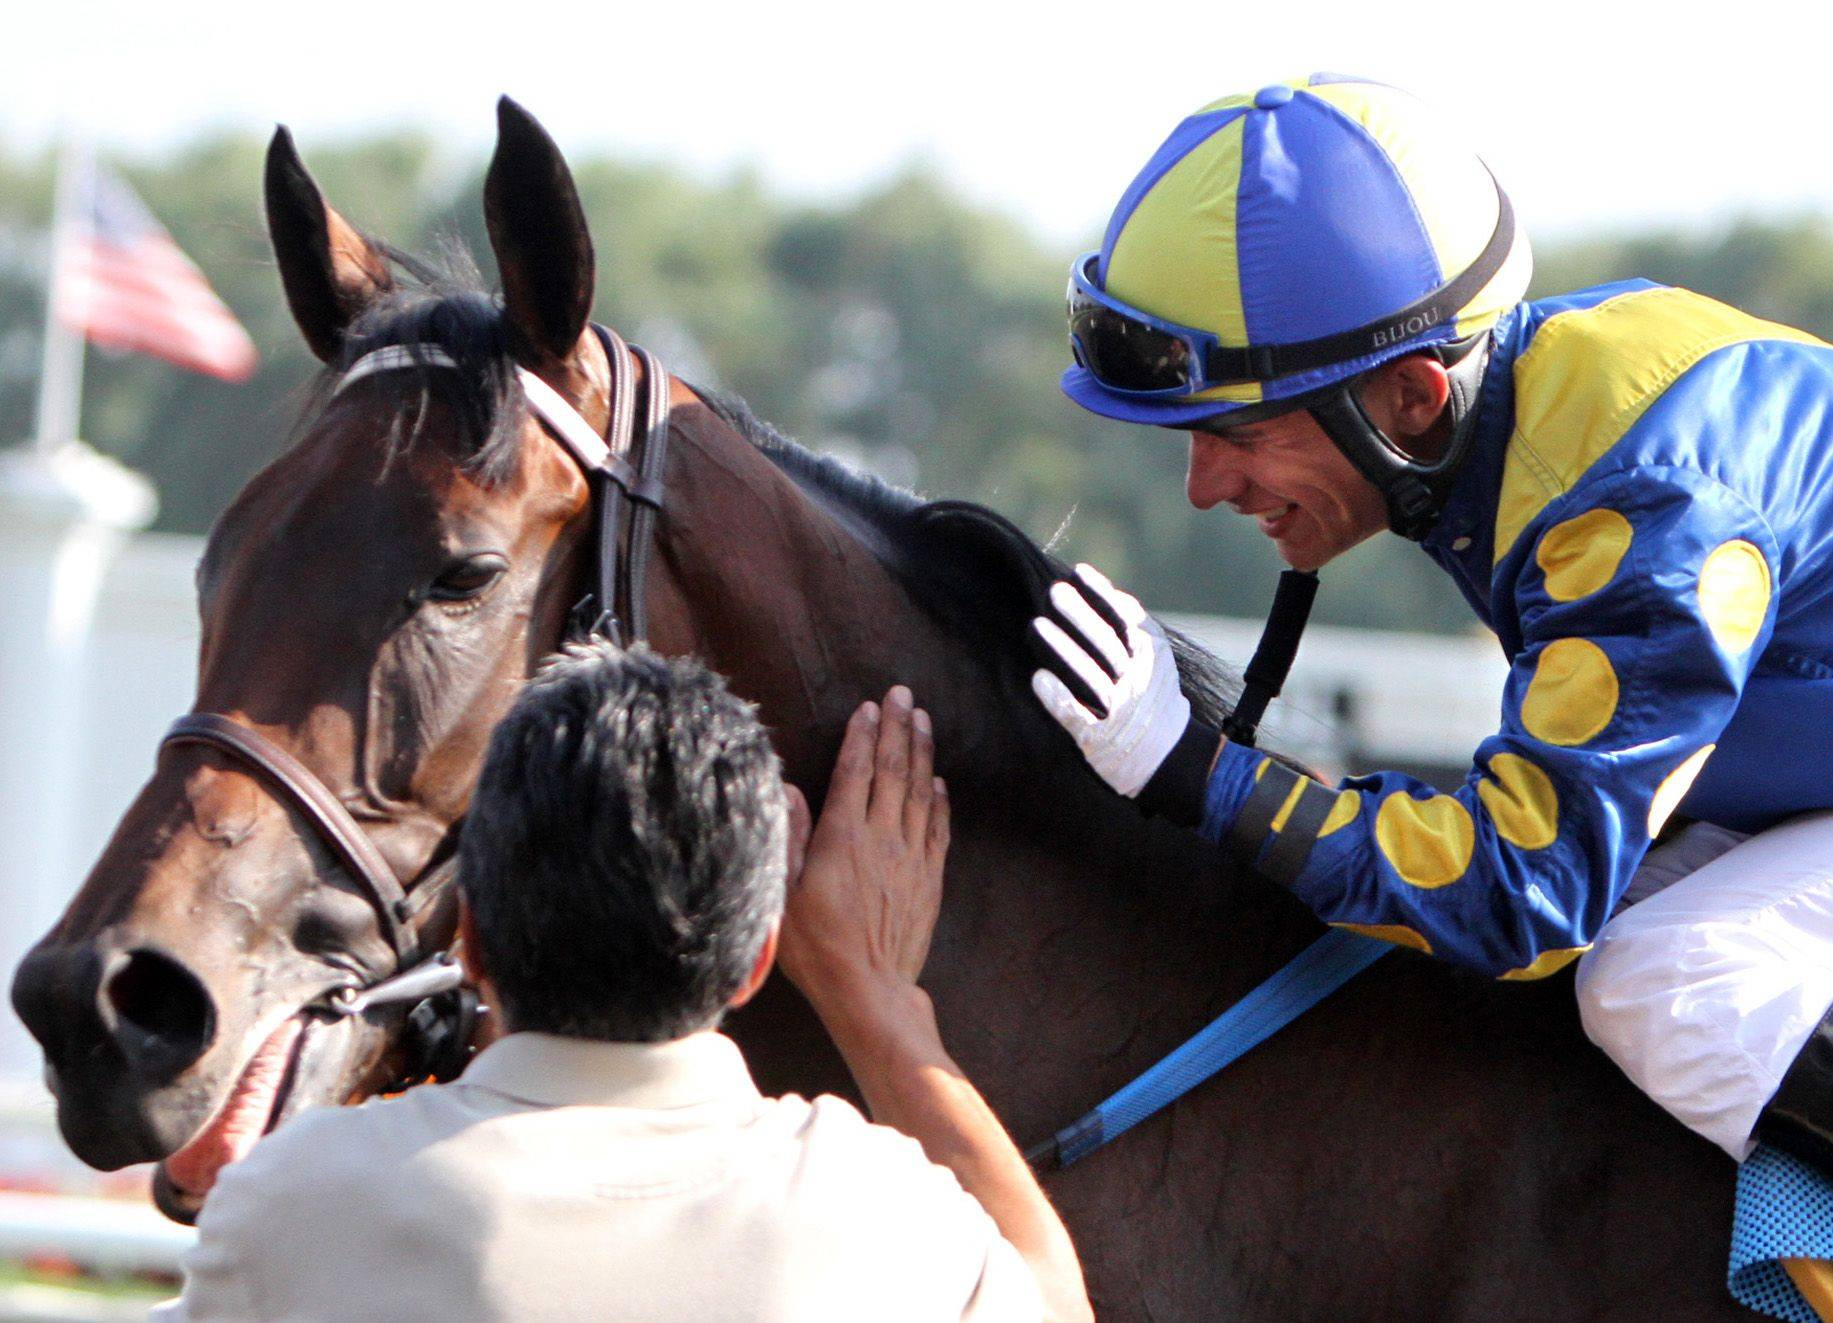 Éclair de Lune, the 4-year-old winner of the Beverly D. in August at Arlington Park, will carry owner Richard Duchossois' colors in the Breeders' Cup Filly & Mare Turf race Friday at Churchill Downs. It is the first time Duchossois has had a horse race in the Breeders' Cup, and his horse is a 15-1 shot.